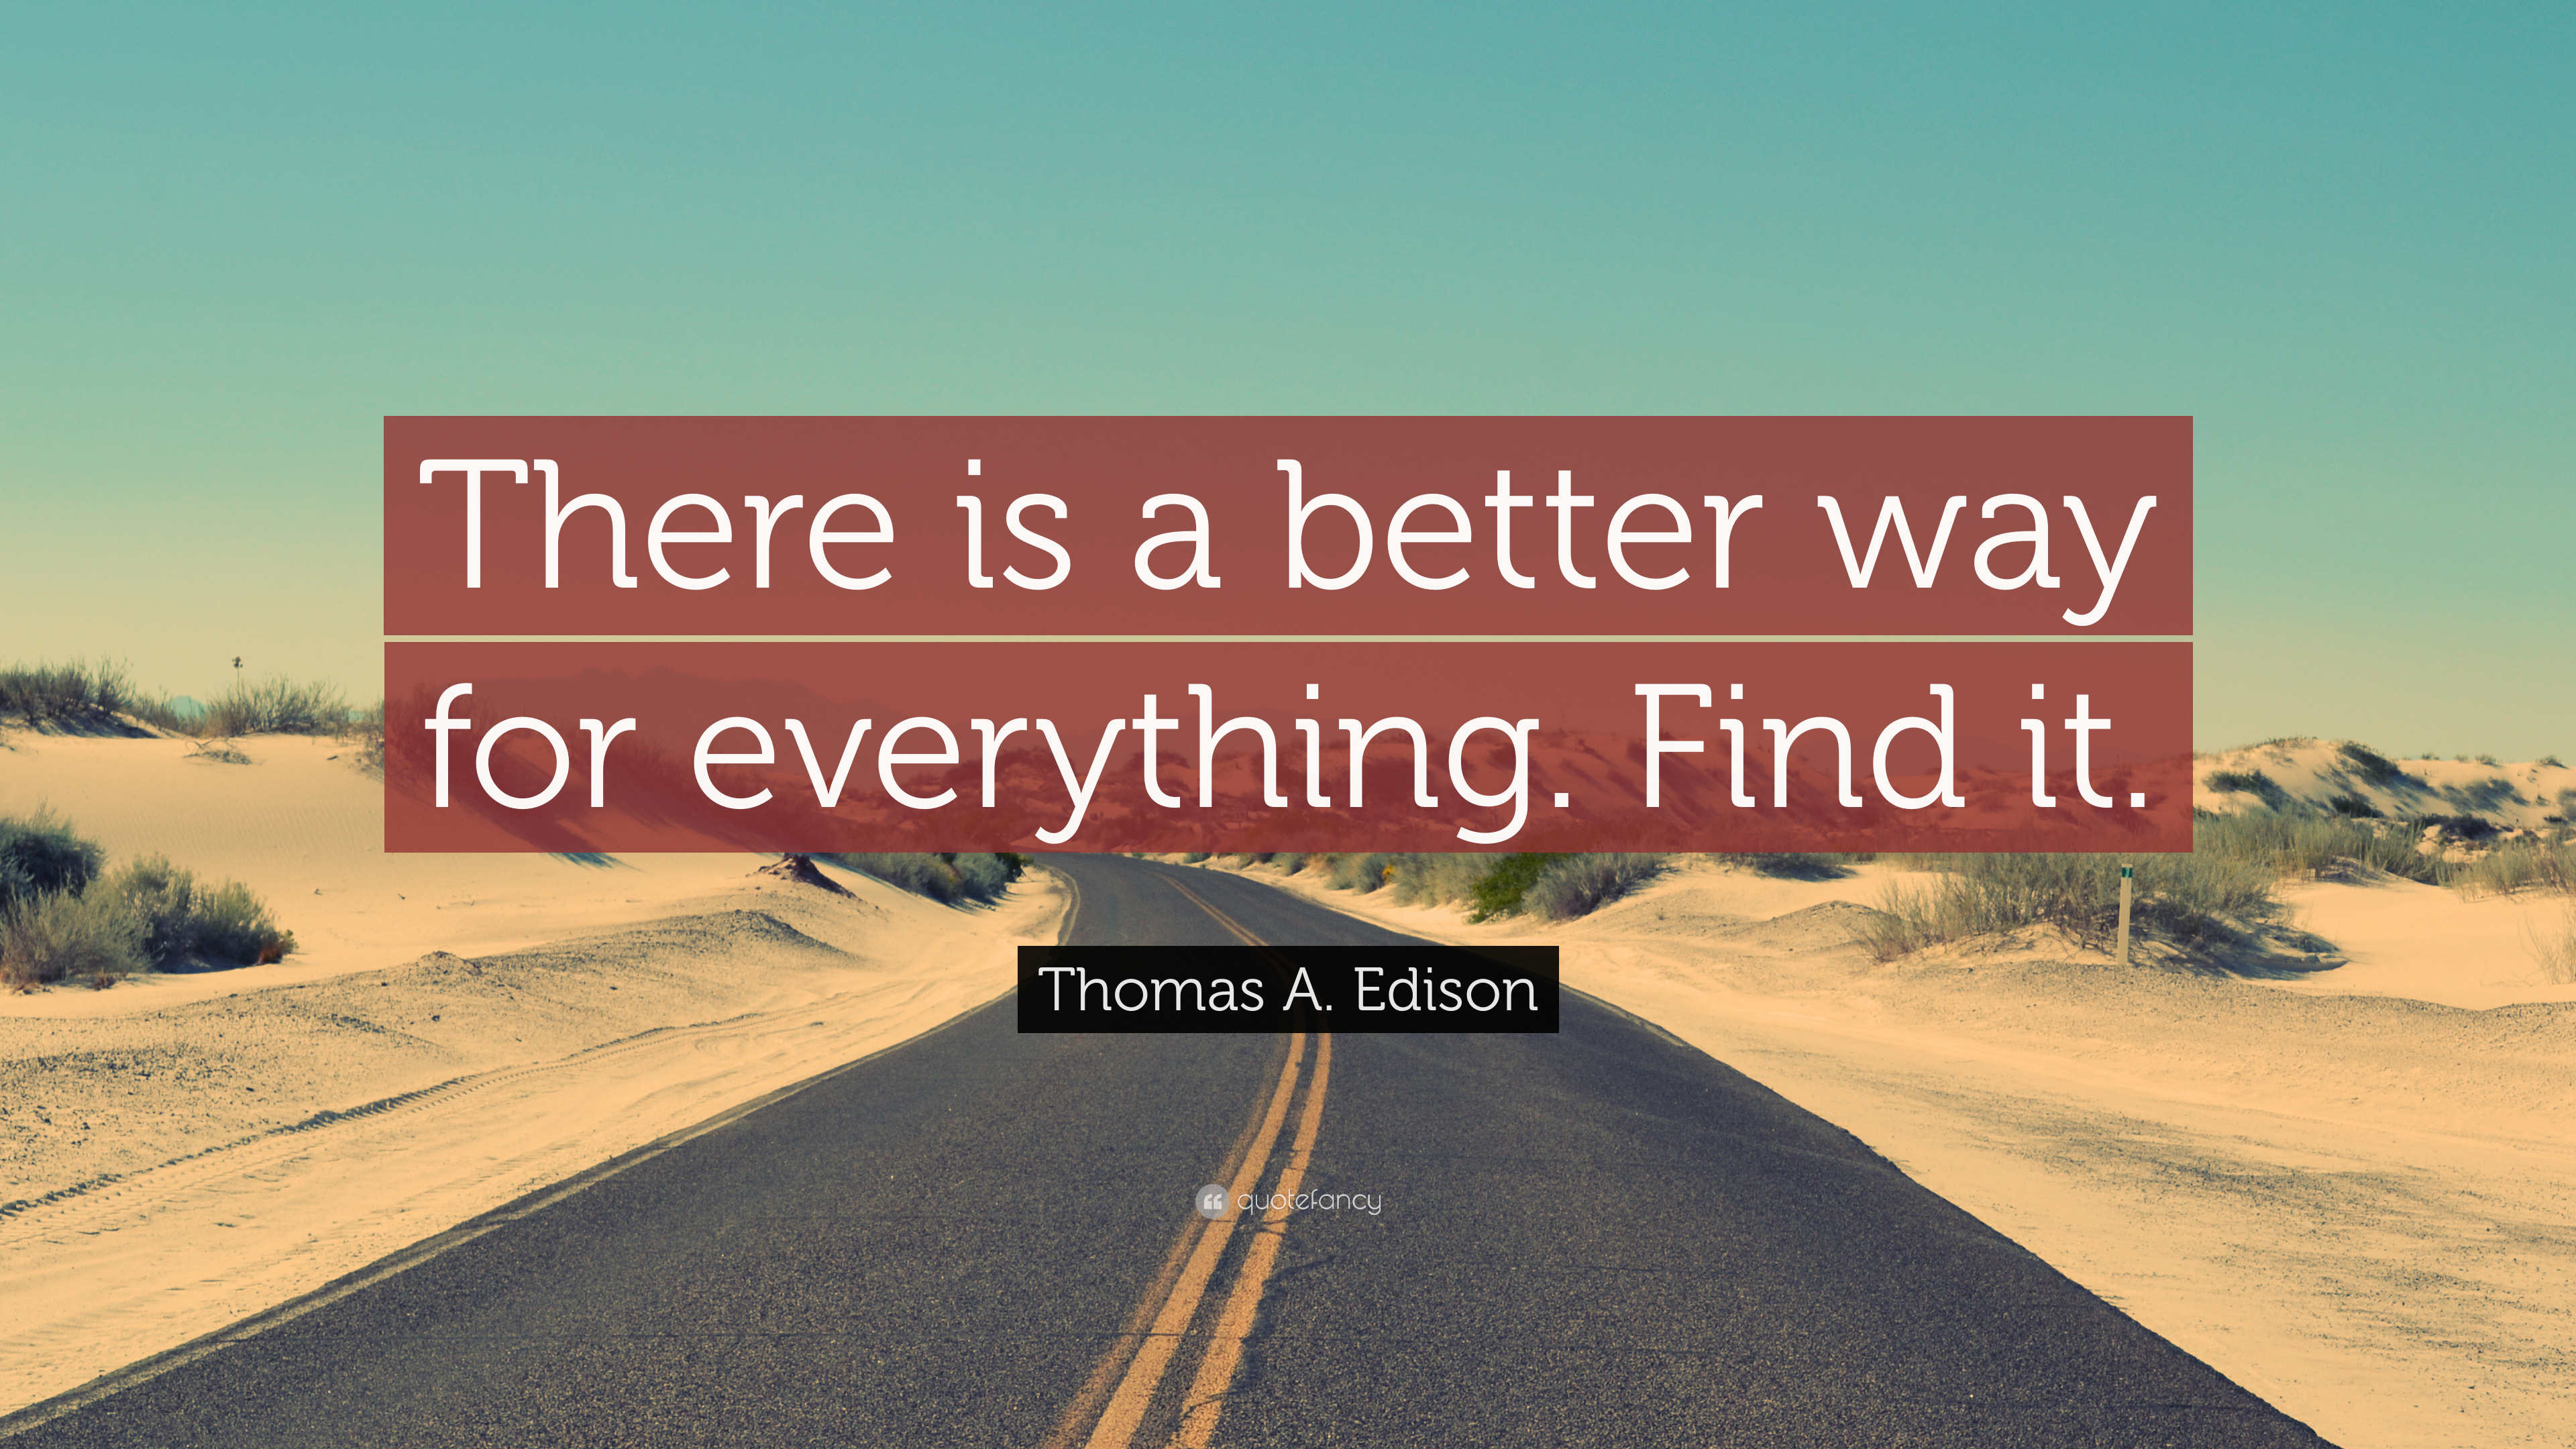 A Better Way >> Thomas A Edison Quote There Is A Better Way For